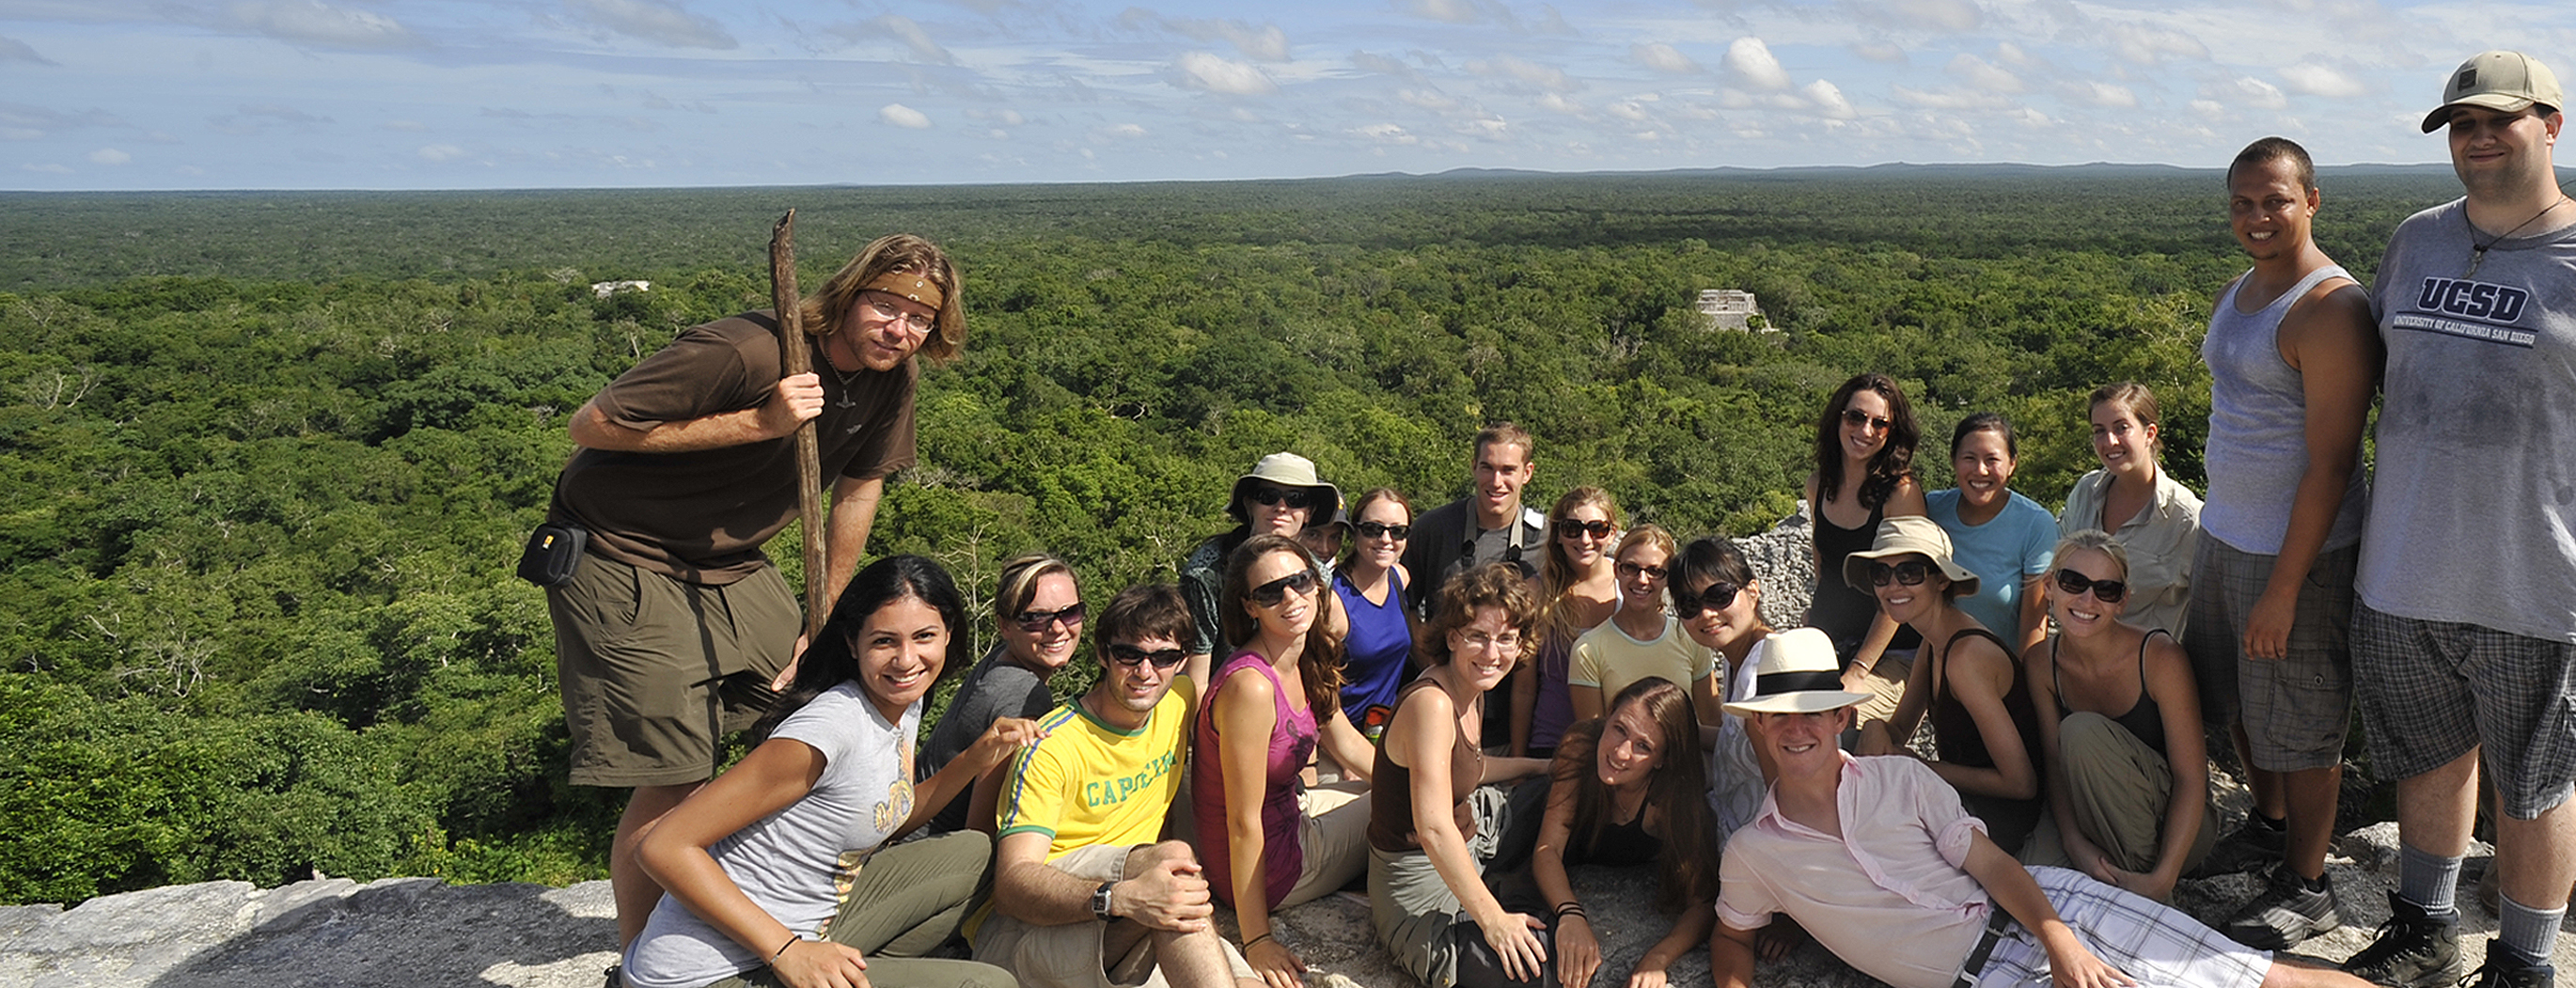 Calakmul, Mexico. Departmental Study Abroad Program. Photo by Prof. Braswell